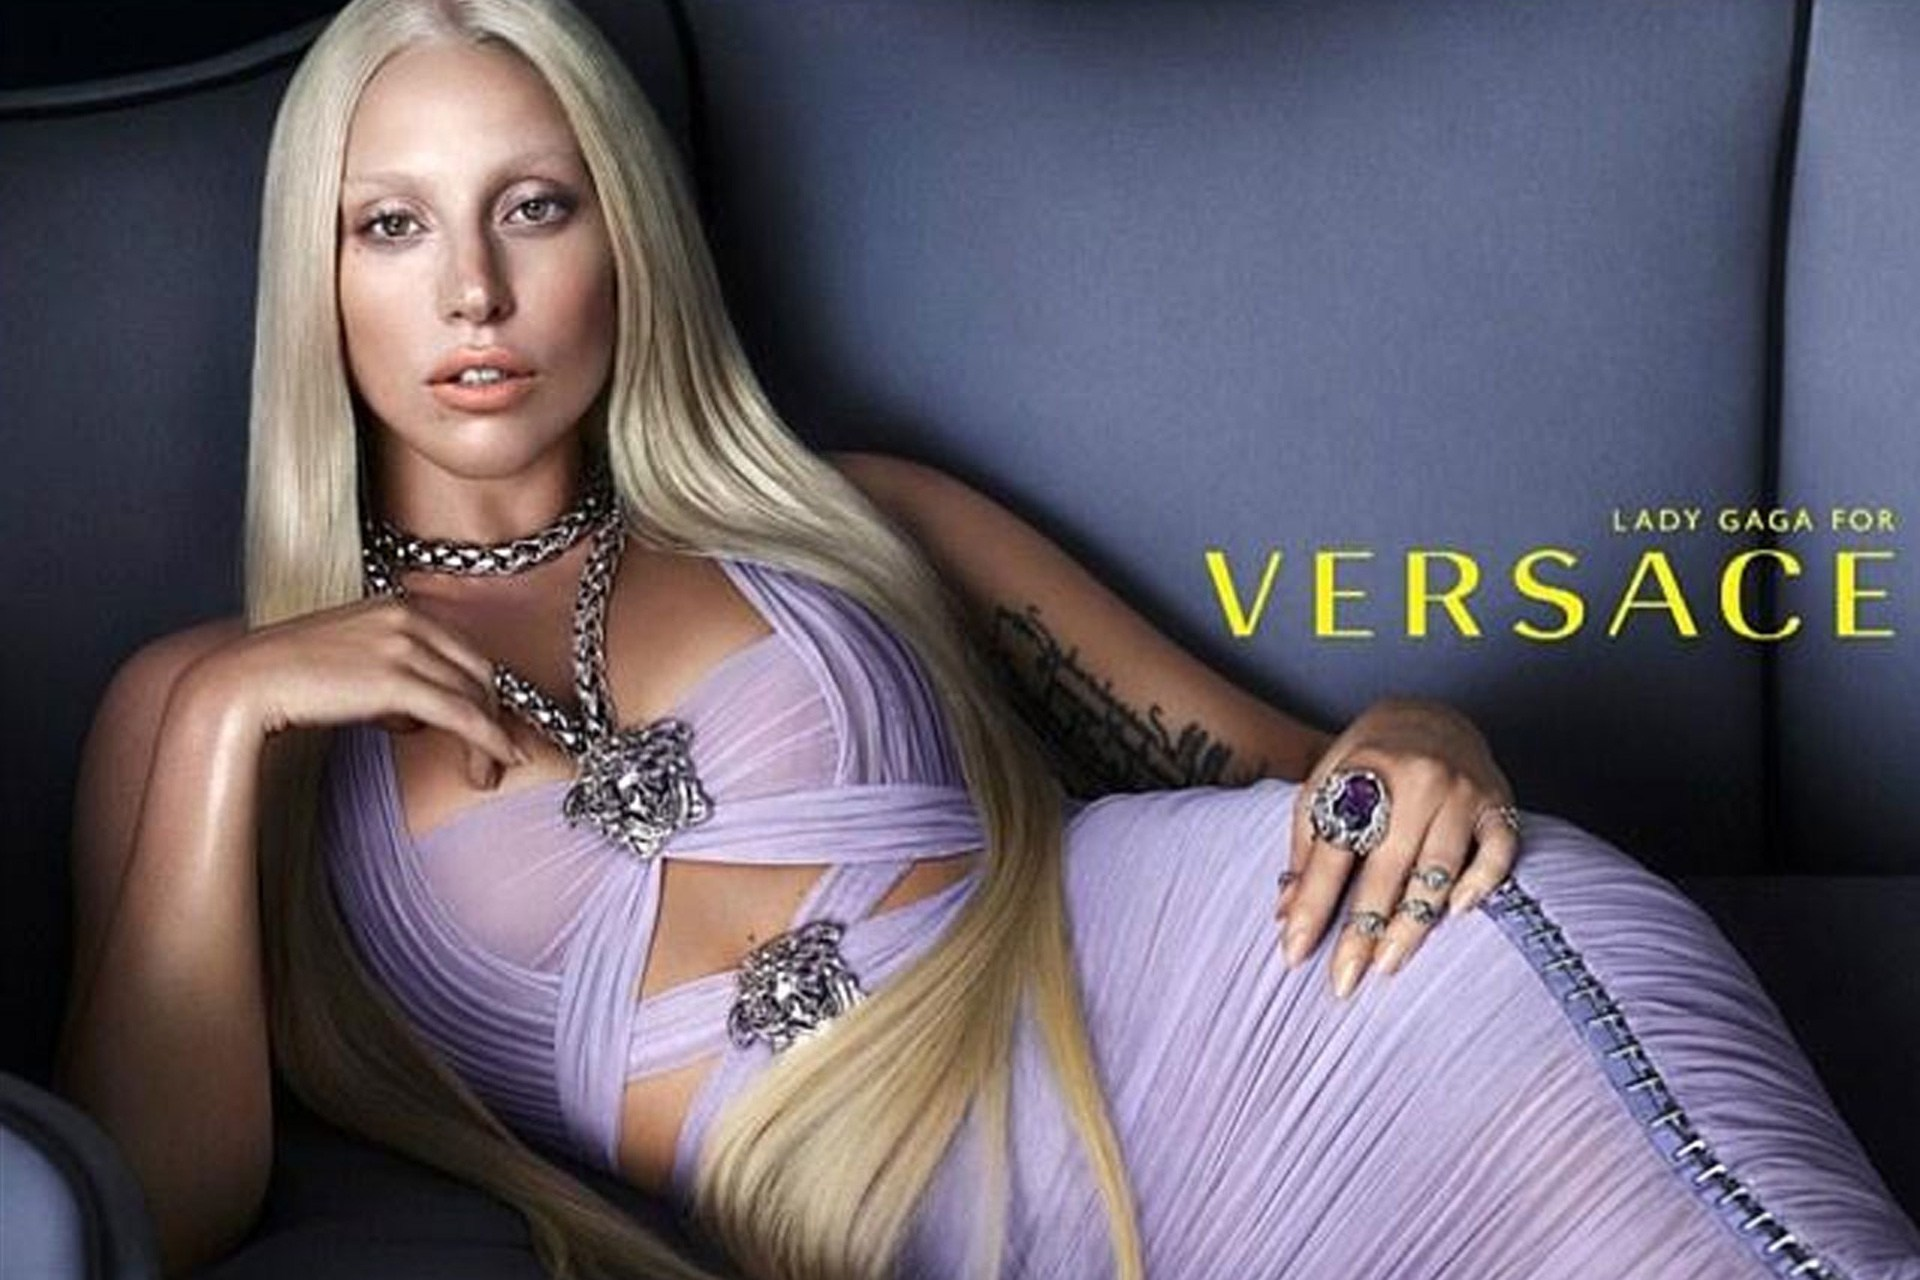 lady-gaga-versace-ad2-vogue-25nov13-pr